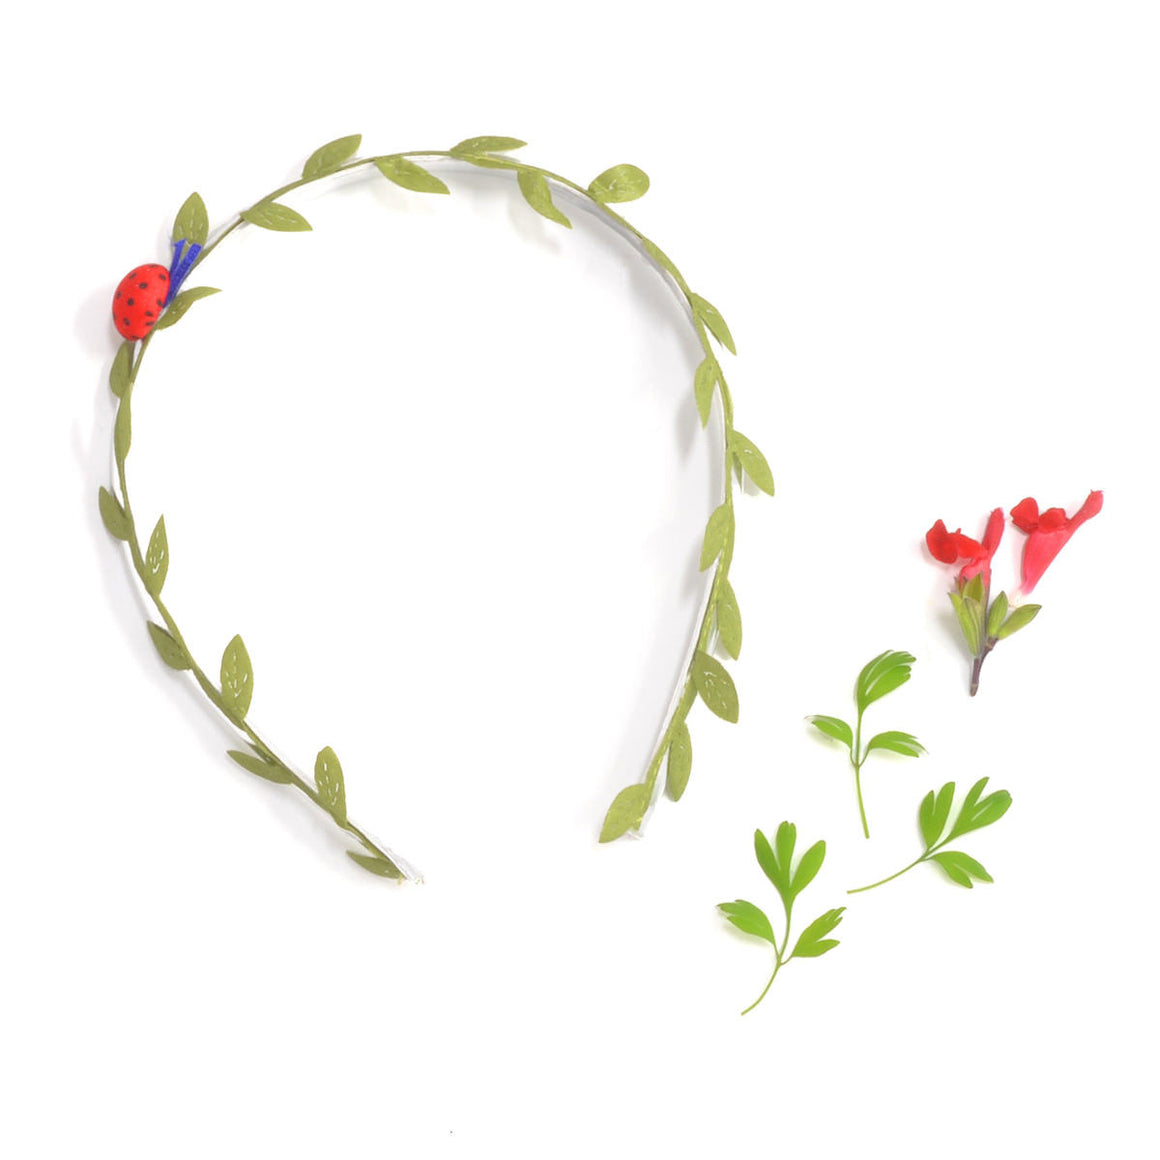 ladybug headband // hello shiso hair accessories for girls